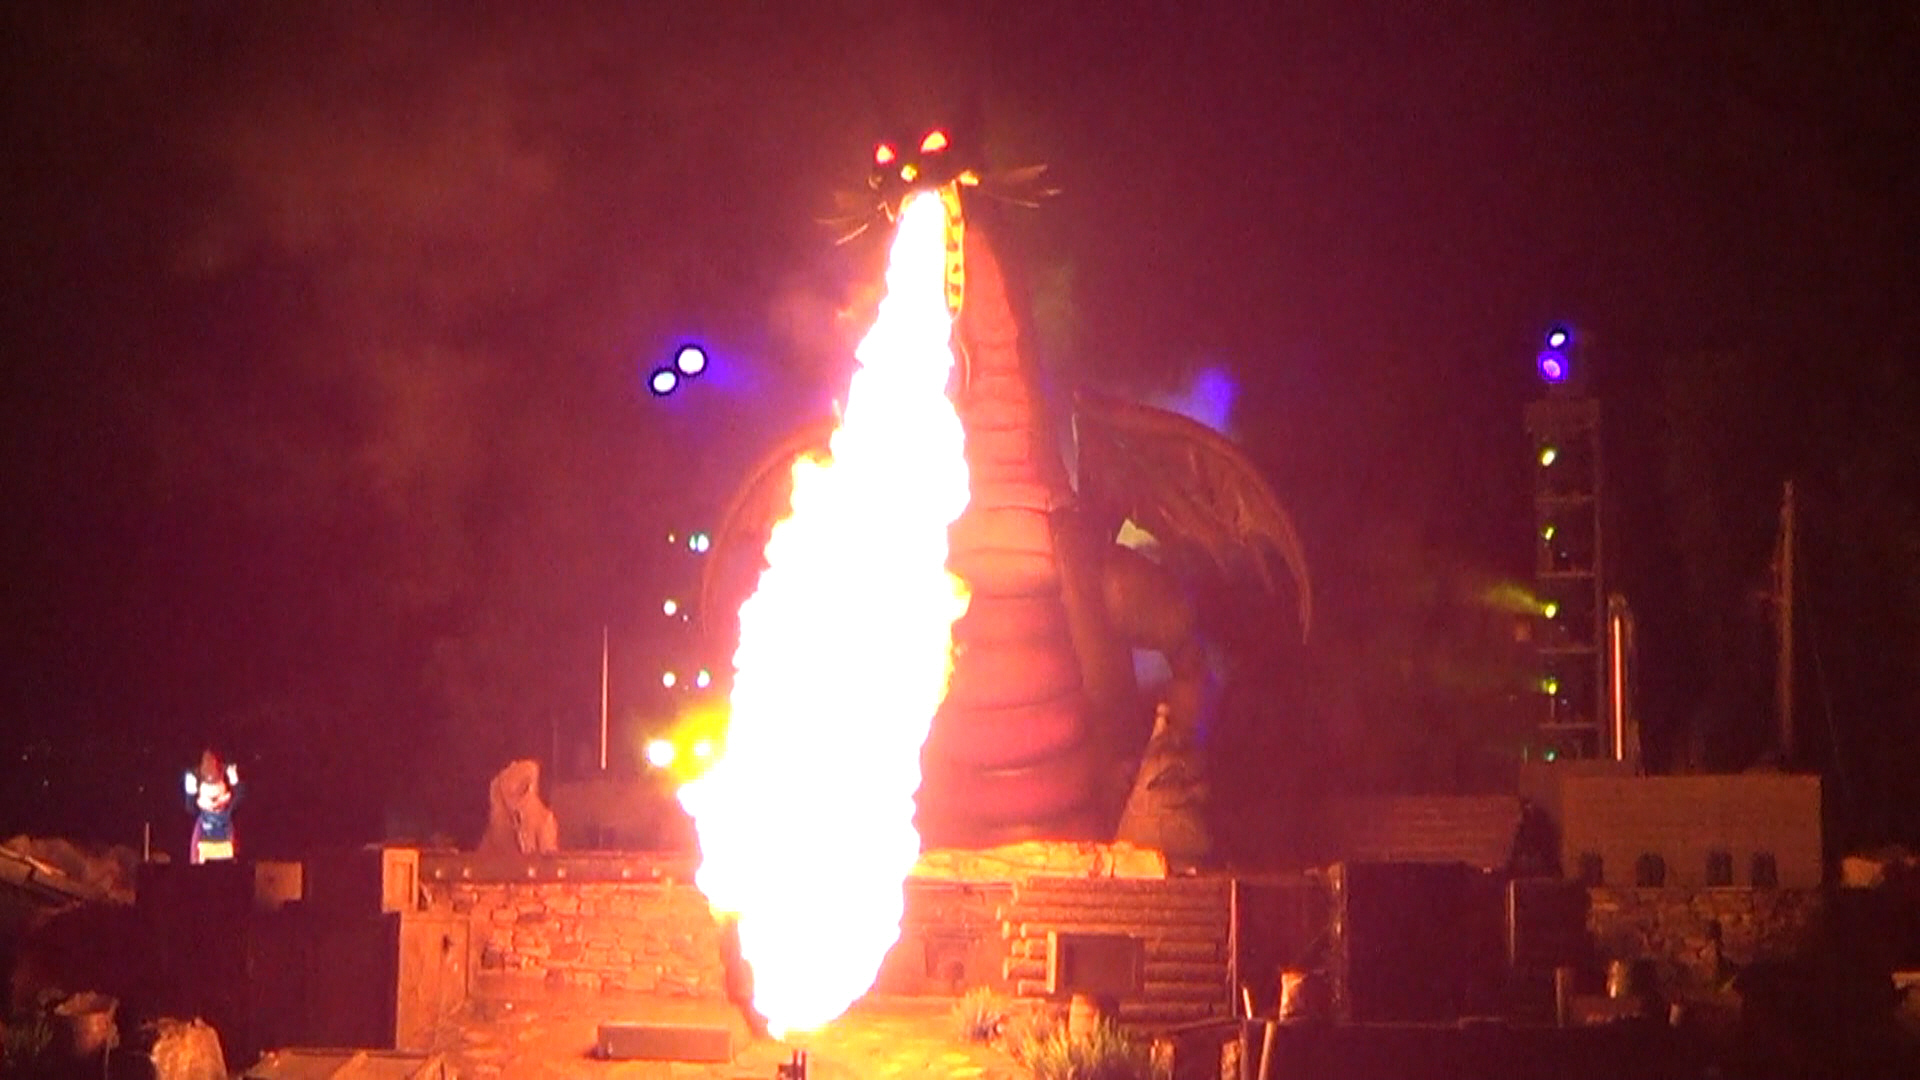 12 Disneyland - Disney really likes to play with fire and always ends their shows with a big bang